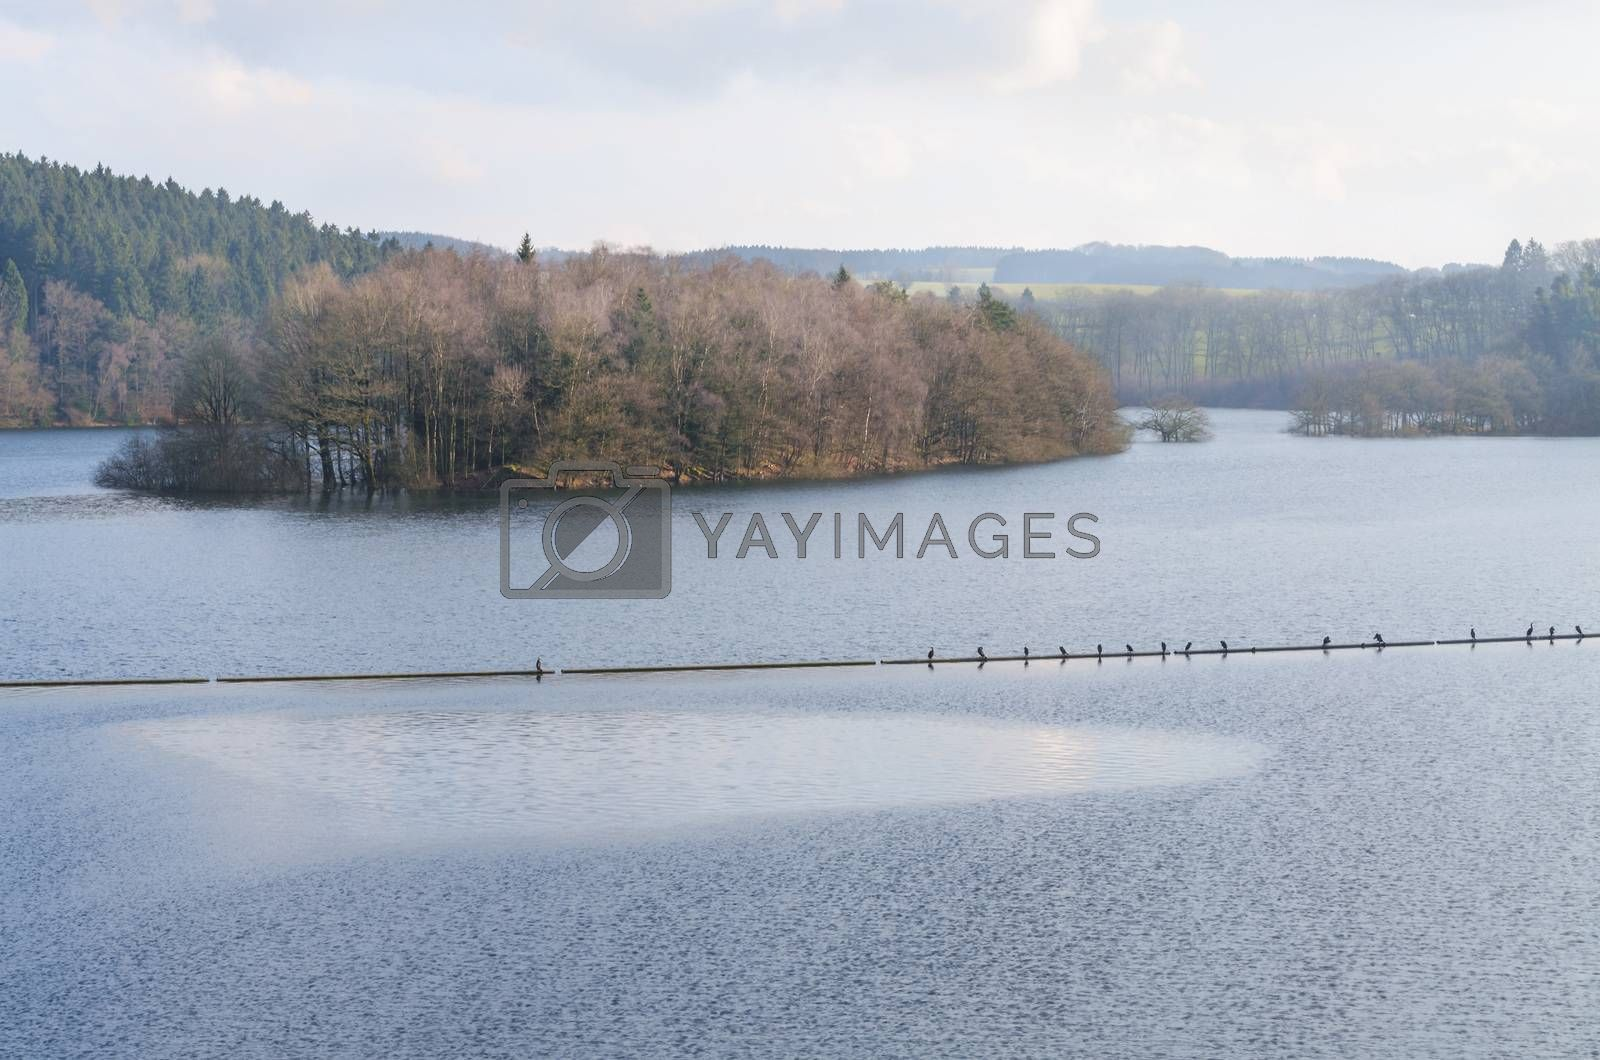 Royalty free image of Dam reservoir, concrete dam, by JFsPic